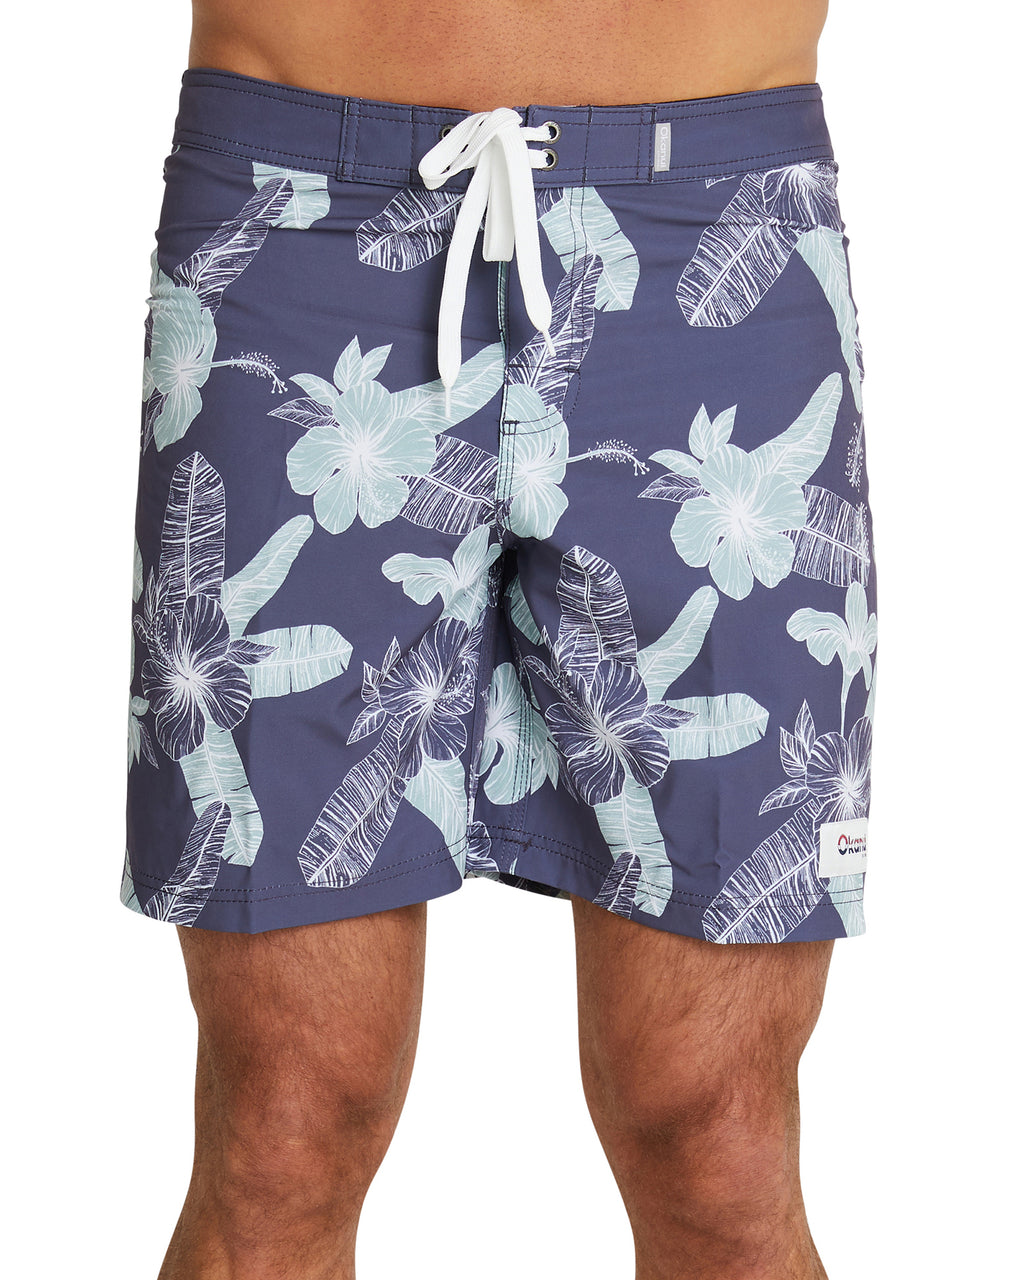 Board Shorts - Fern Gully Boardrider